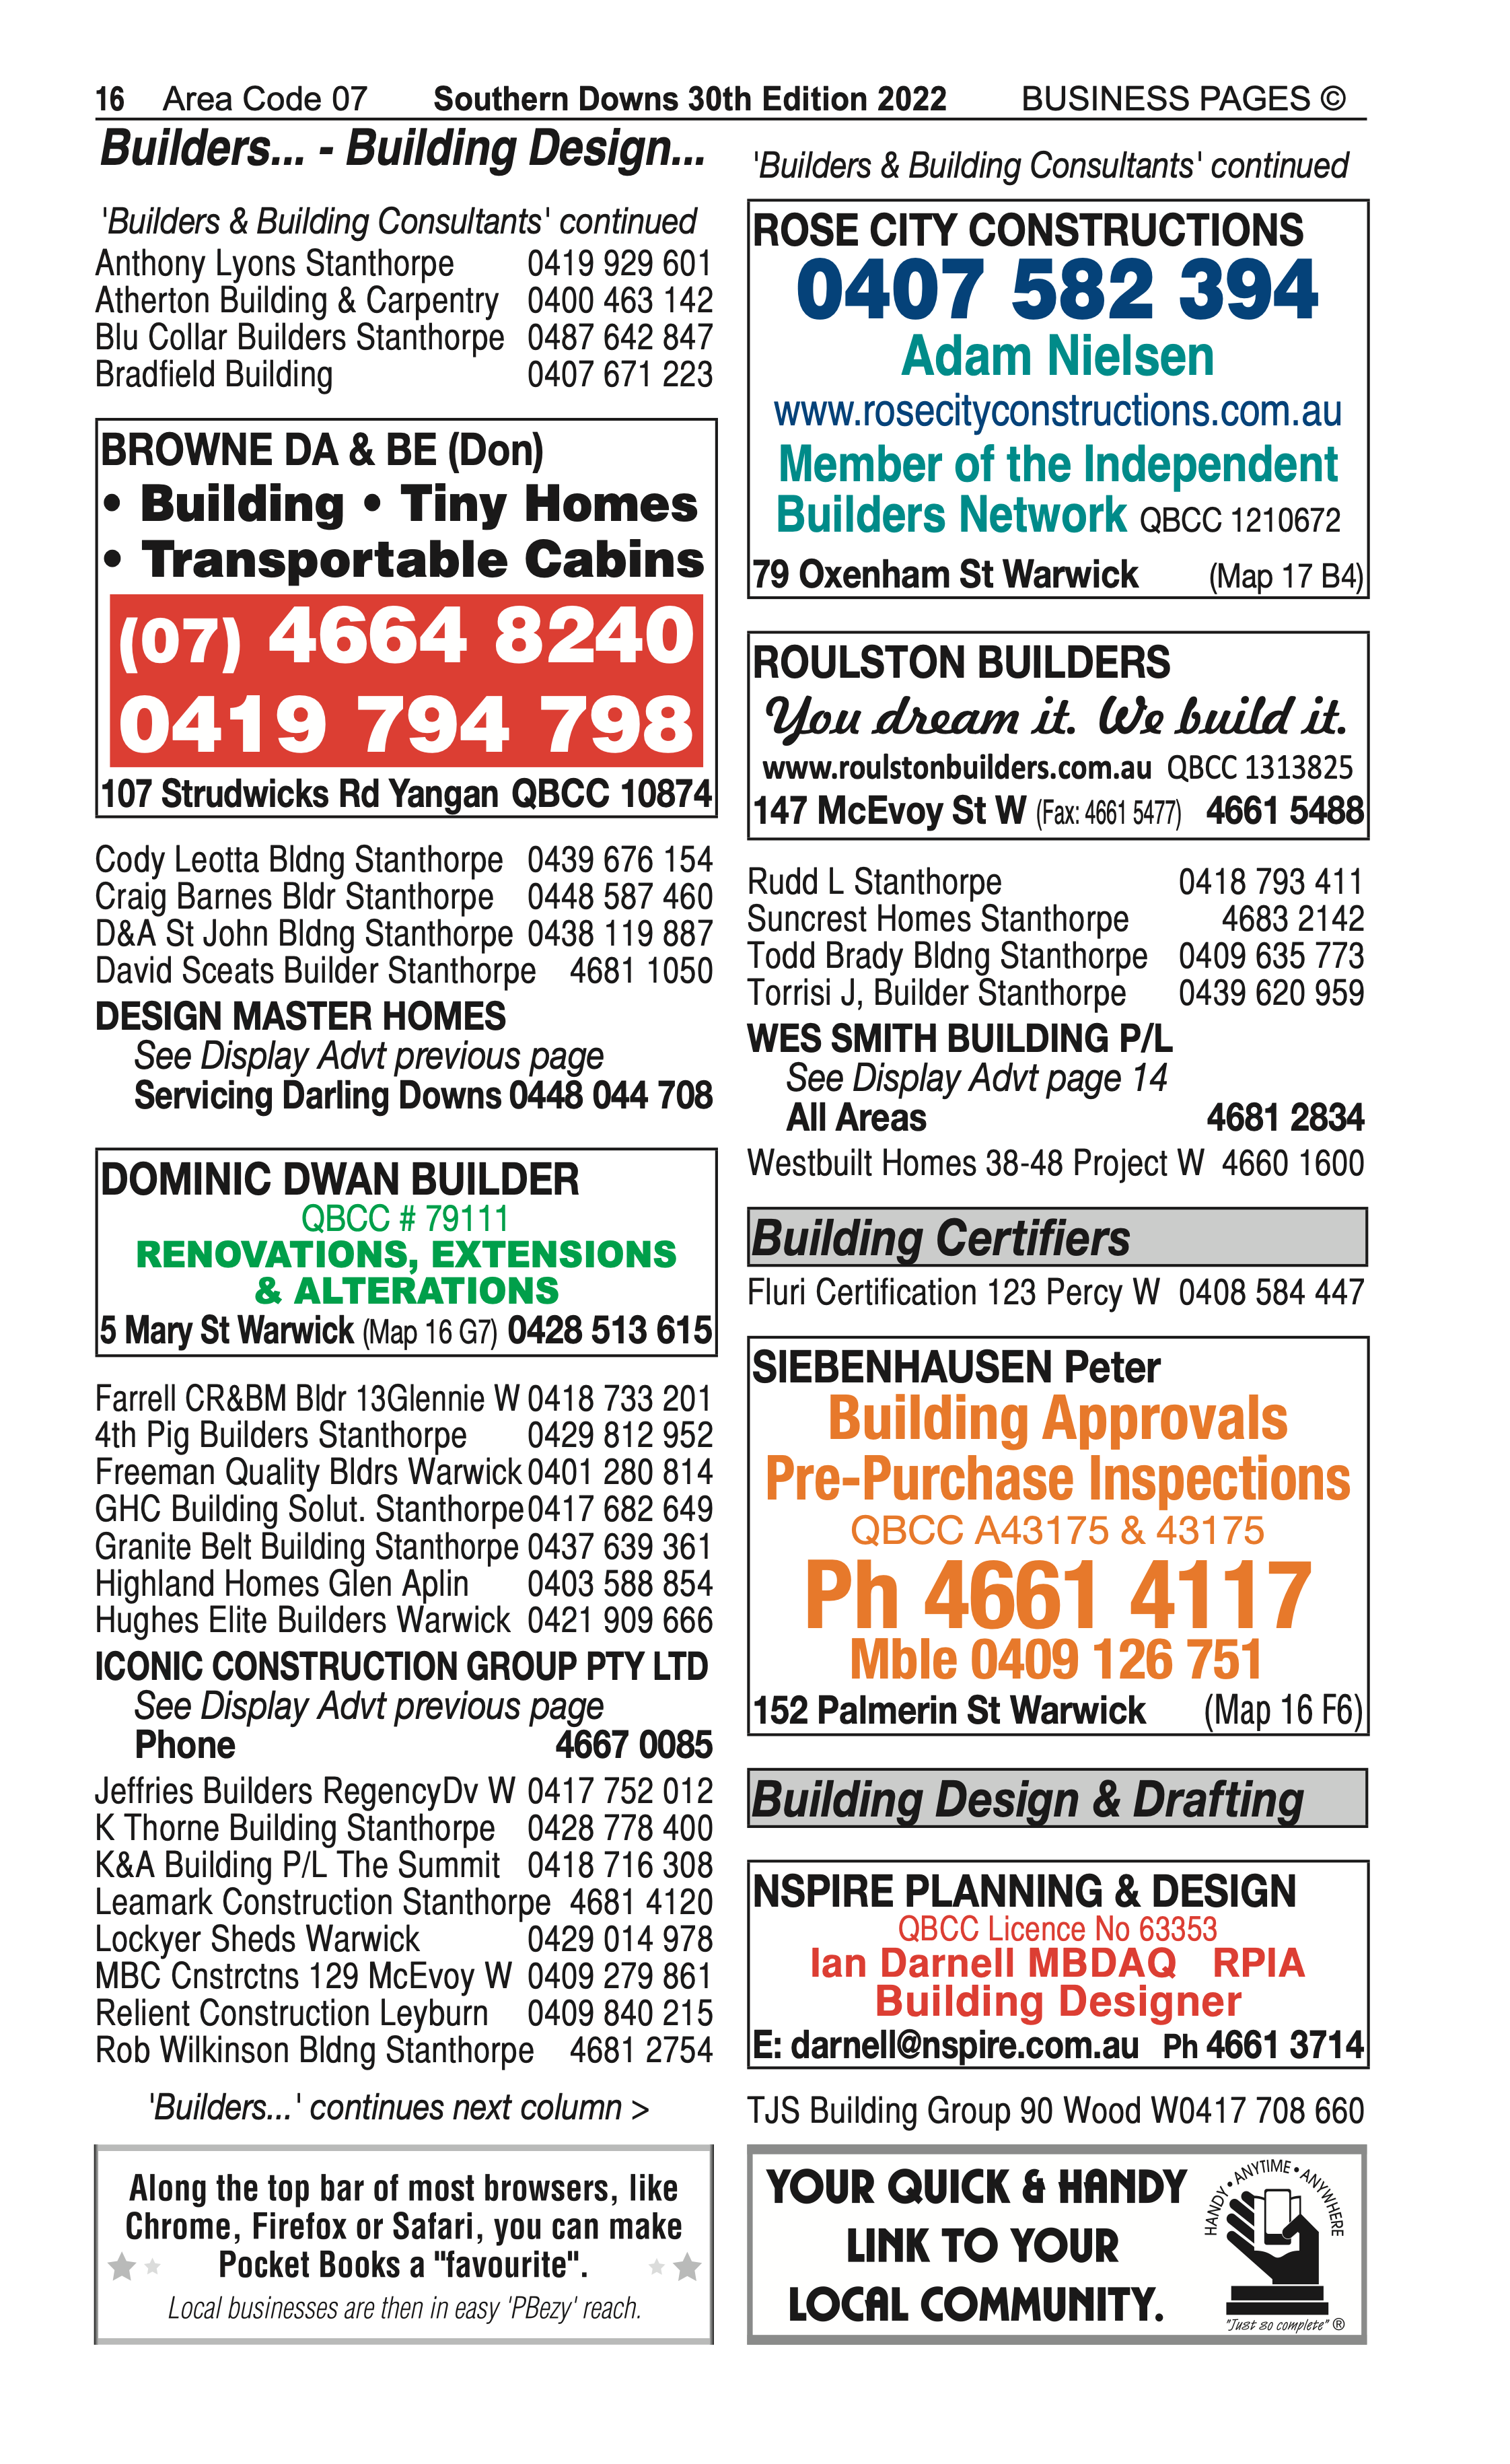 Browne DA & BE (Don) | Builders & Building Consultants in Yangan | PBezy Pocket Books local directories - page 16